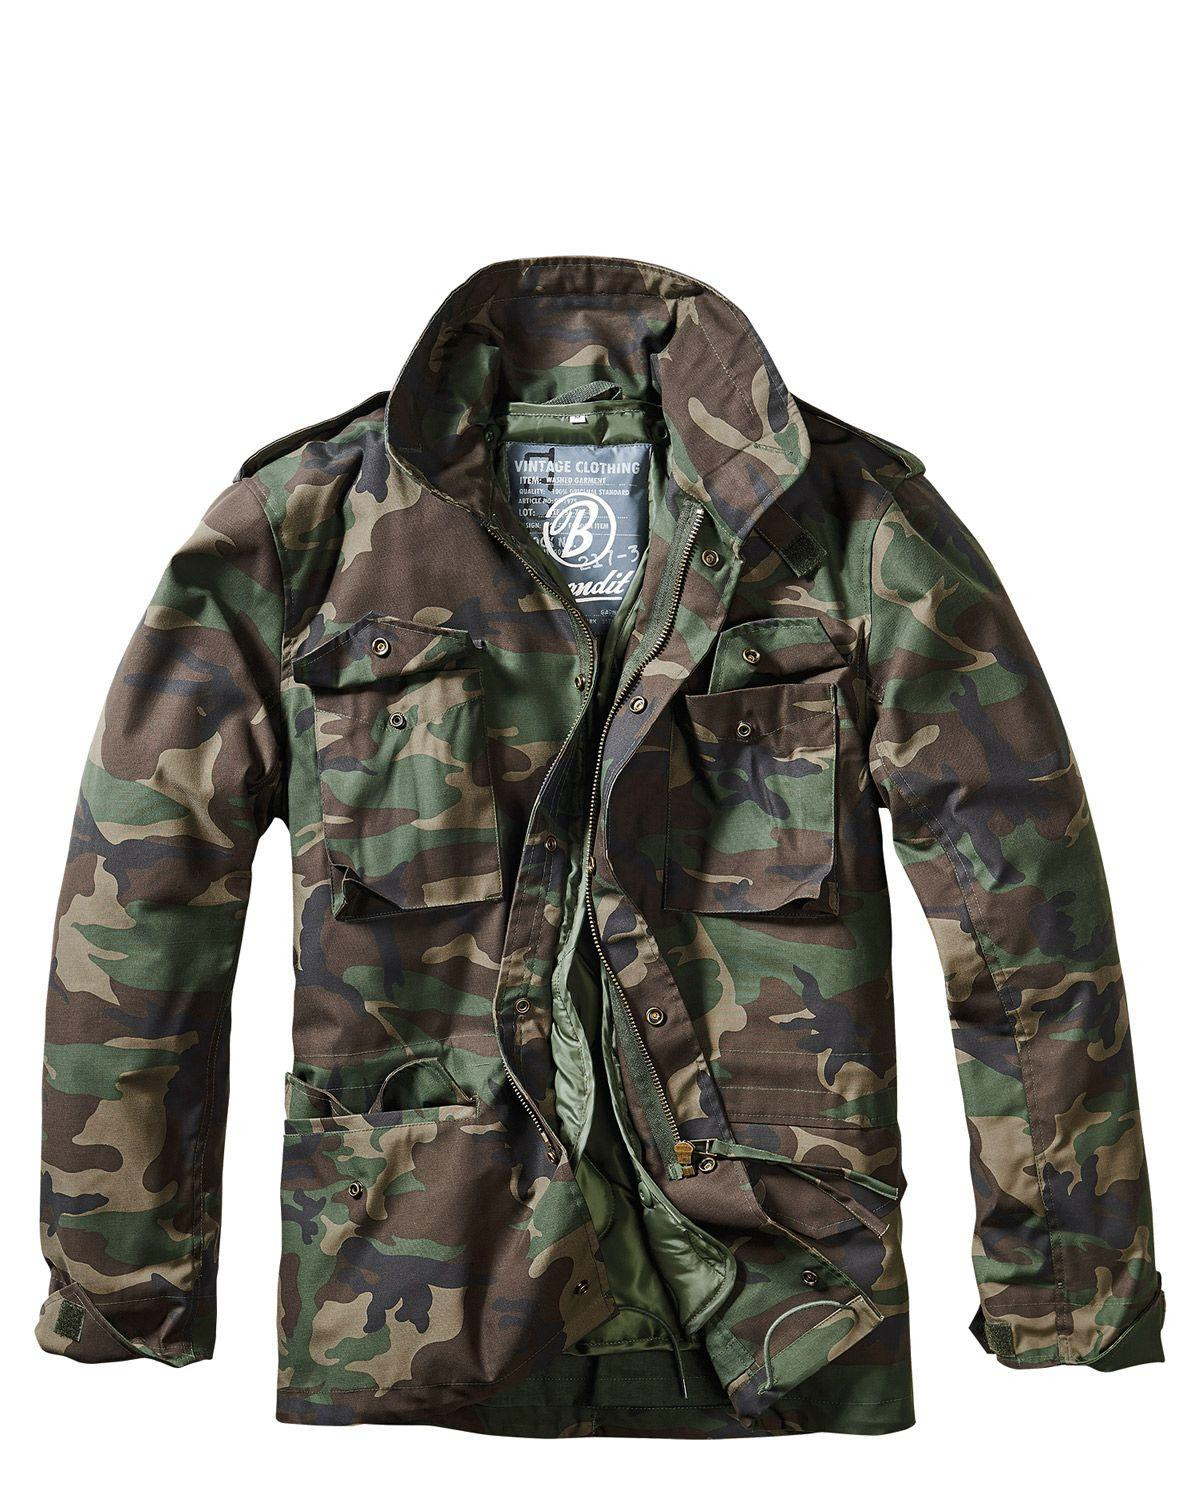 Buy Brandit M65 Giant Jacket | Money Back Guarantee | ARMY STAR